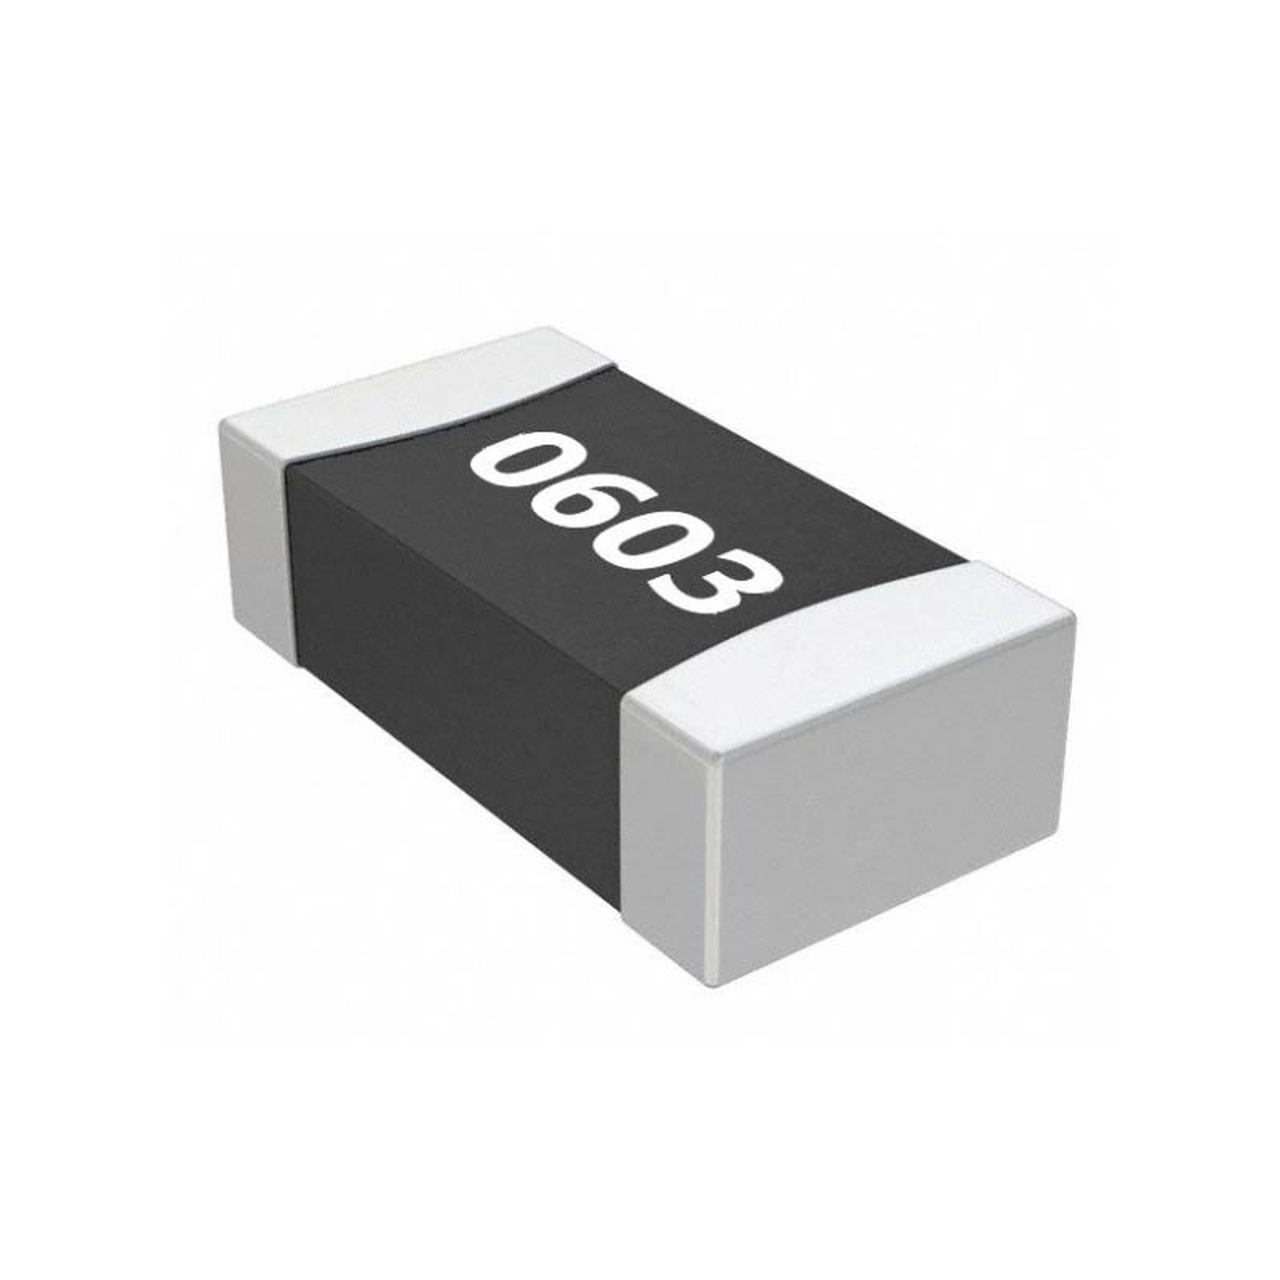 1/4W 0603 Surface Mount Chip Resistor